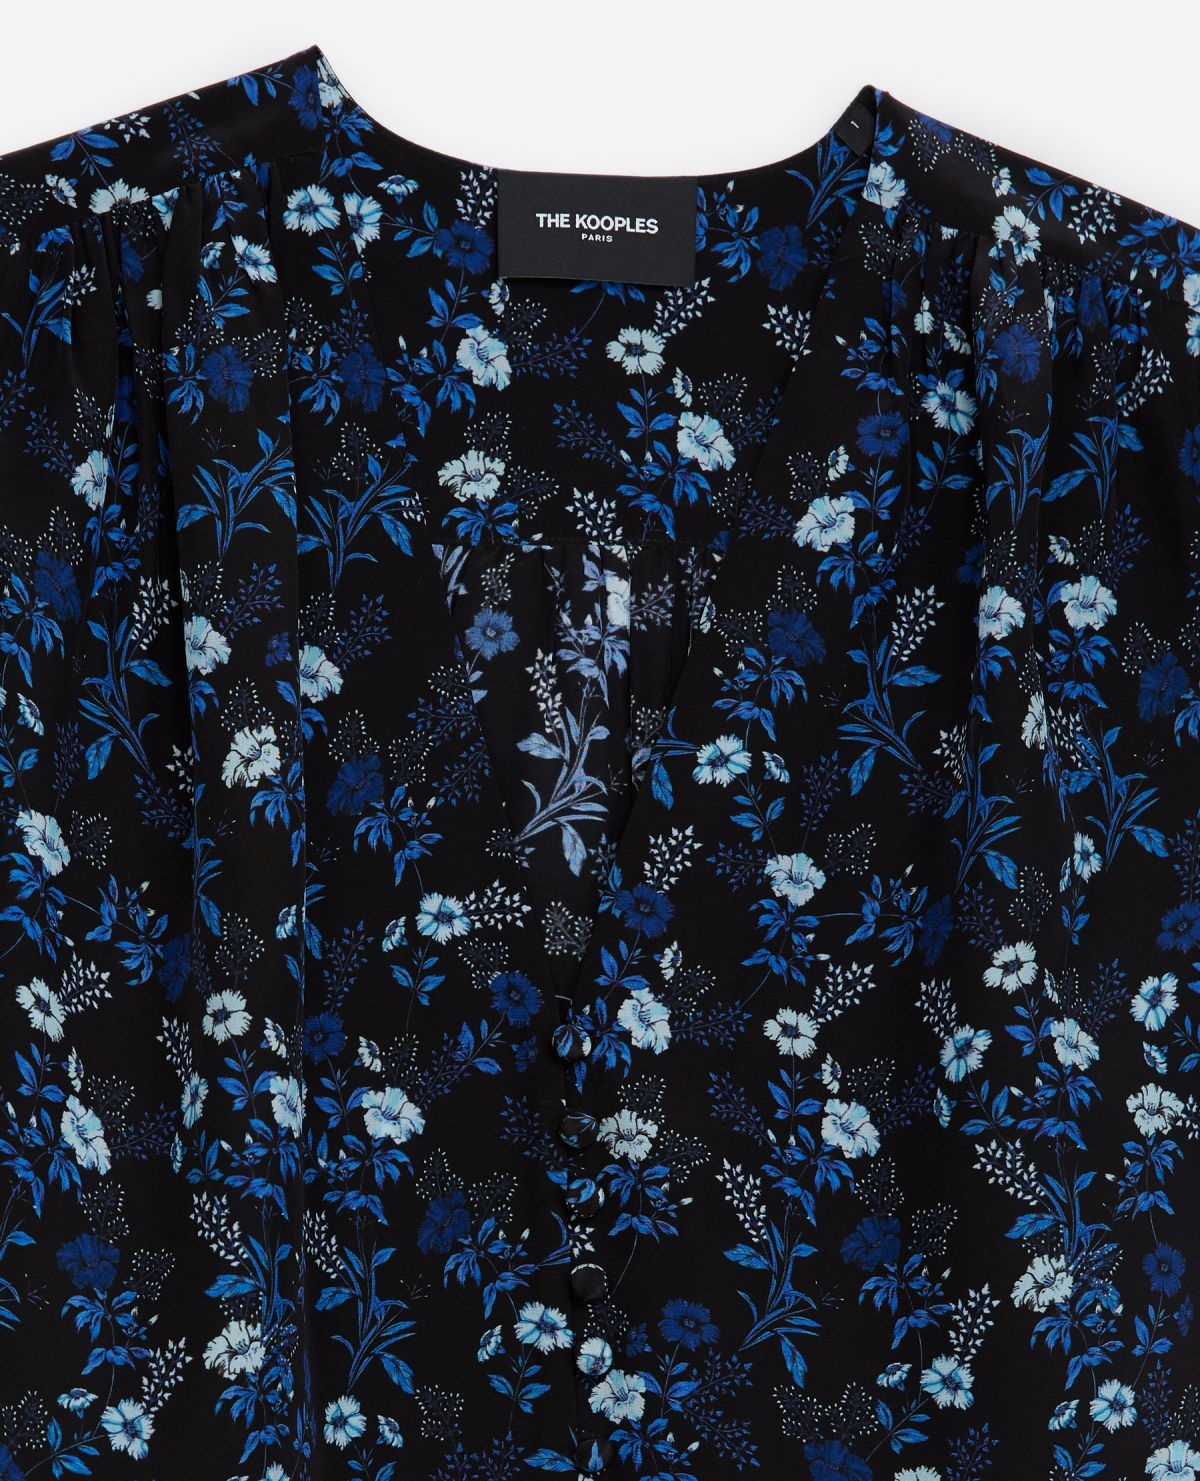 THE KOOPLES chemise bleue col v manches ballons-2